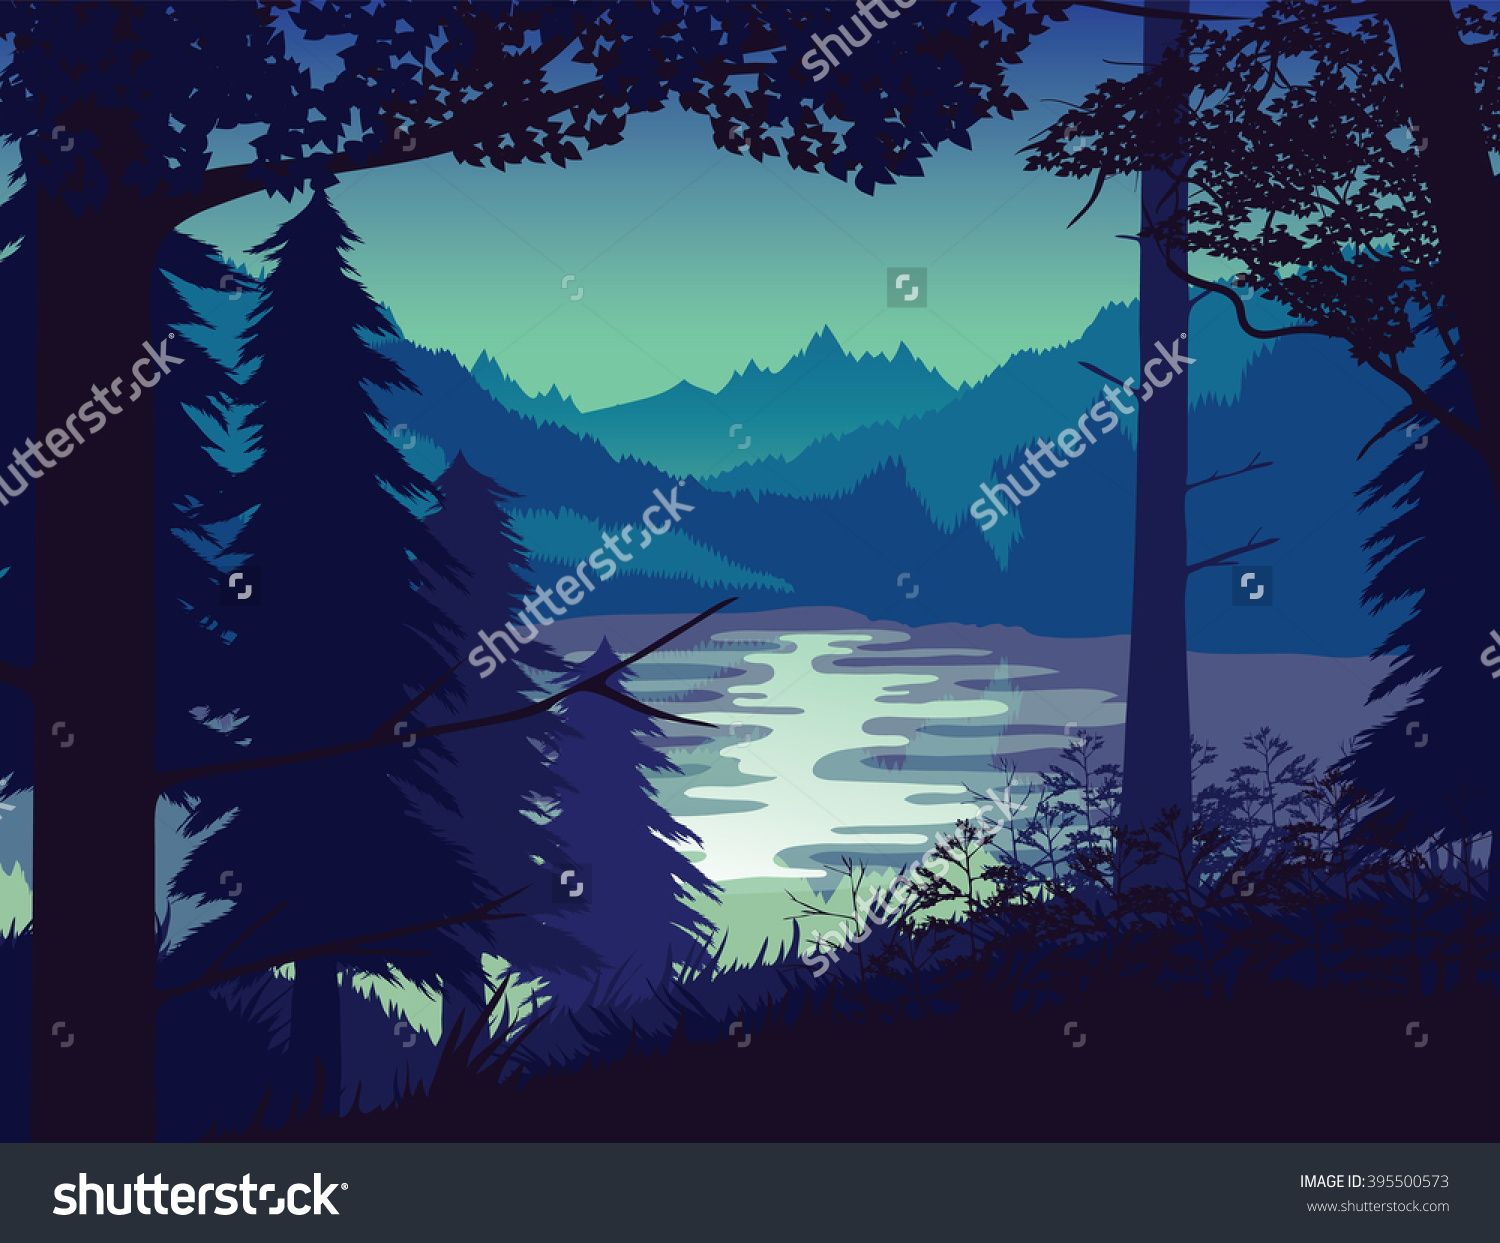 A High Quality Background Of Landscape With River Forest And Mountains Sunset Mountain Landscape Landscape River Forest